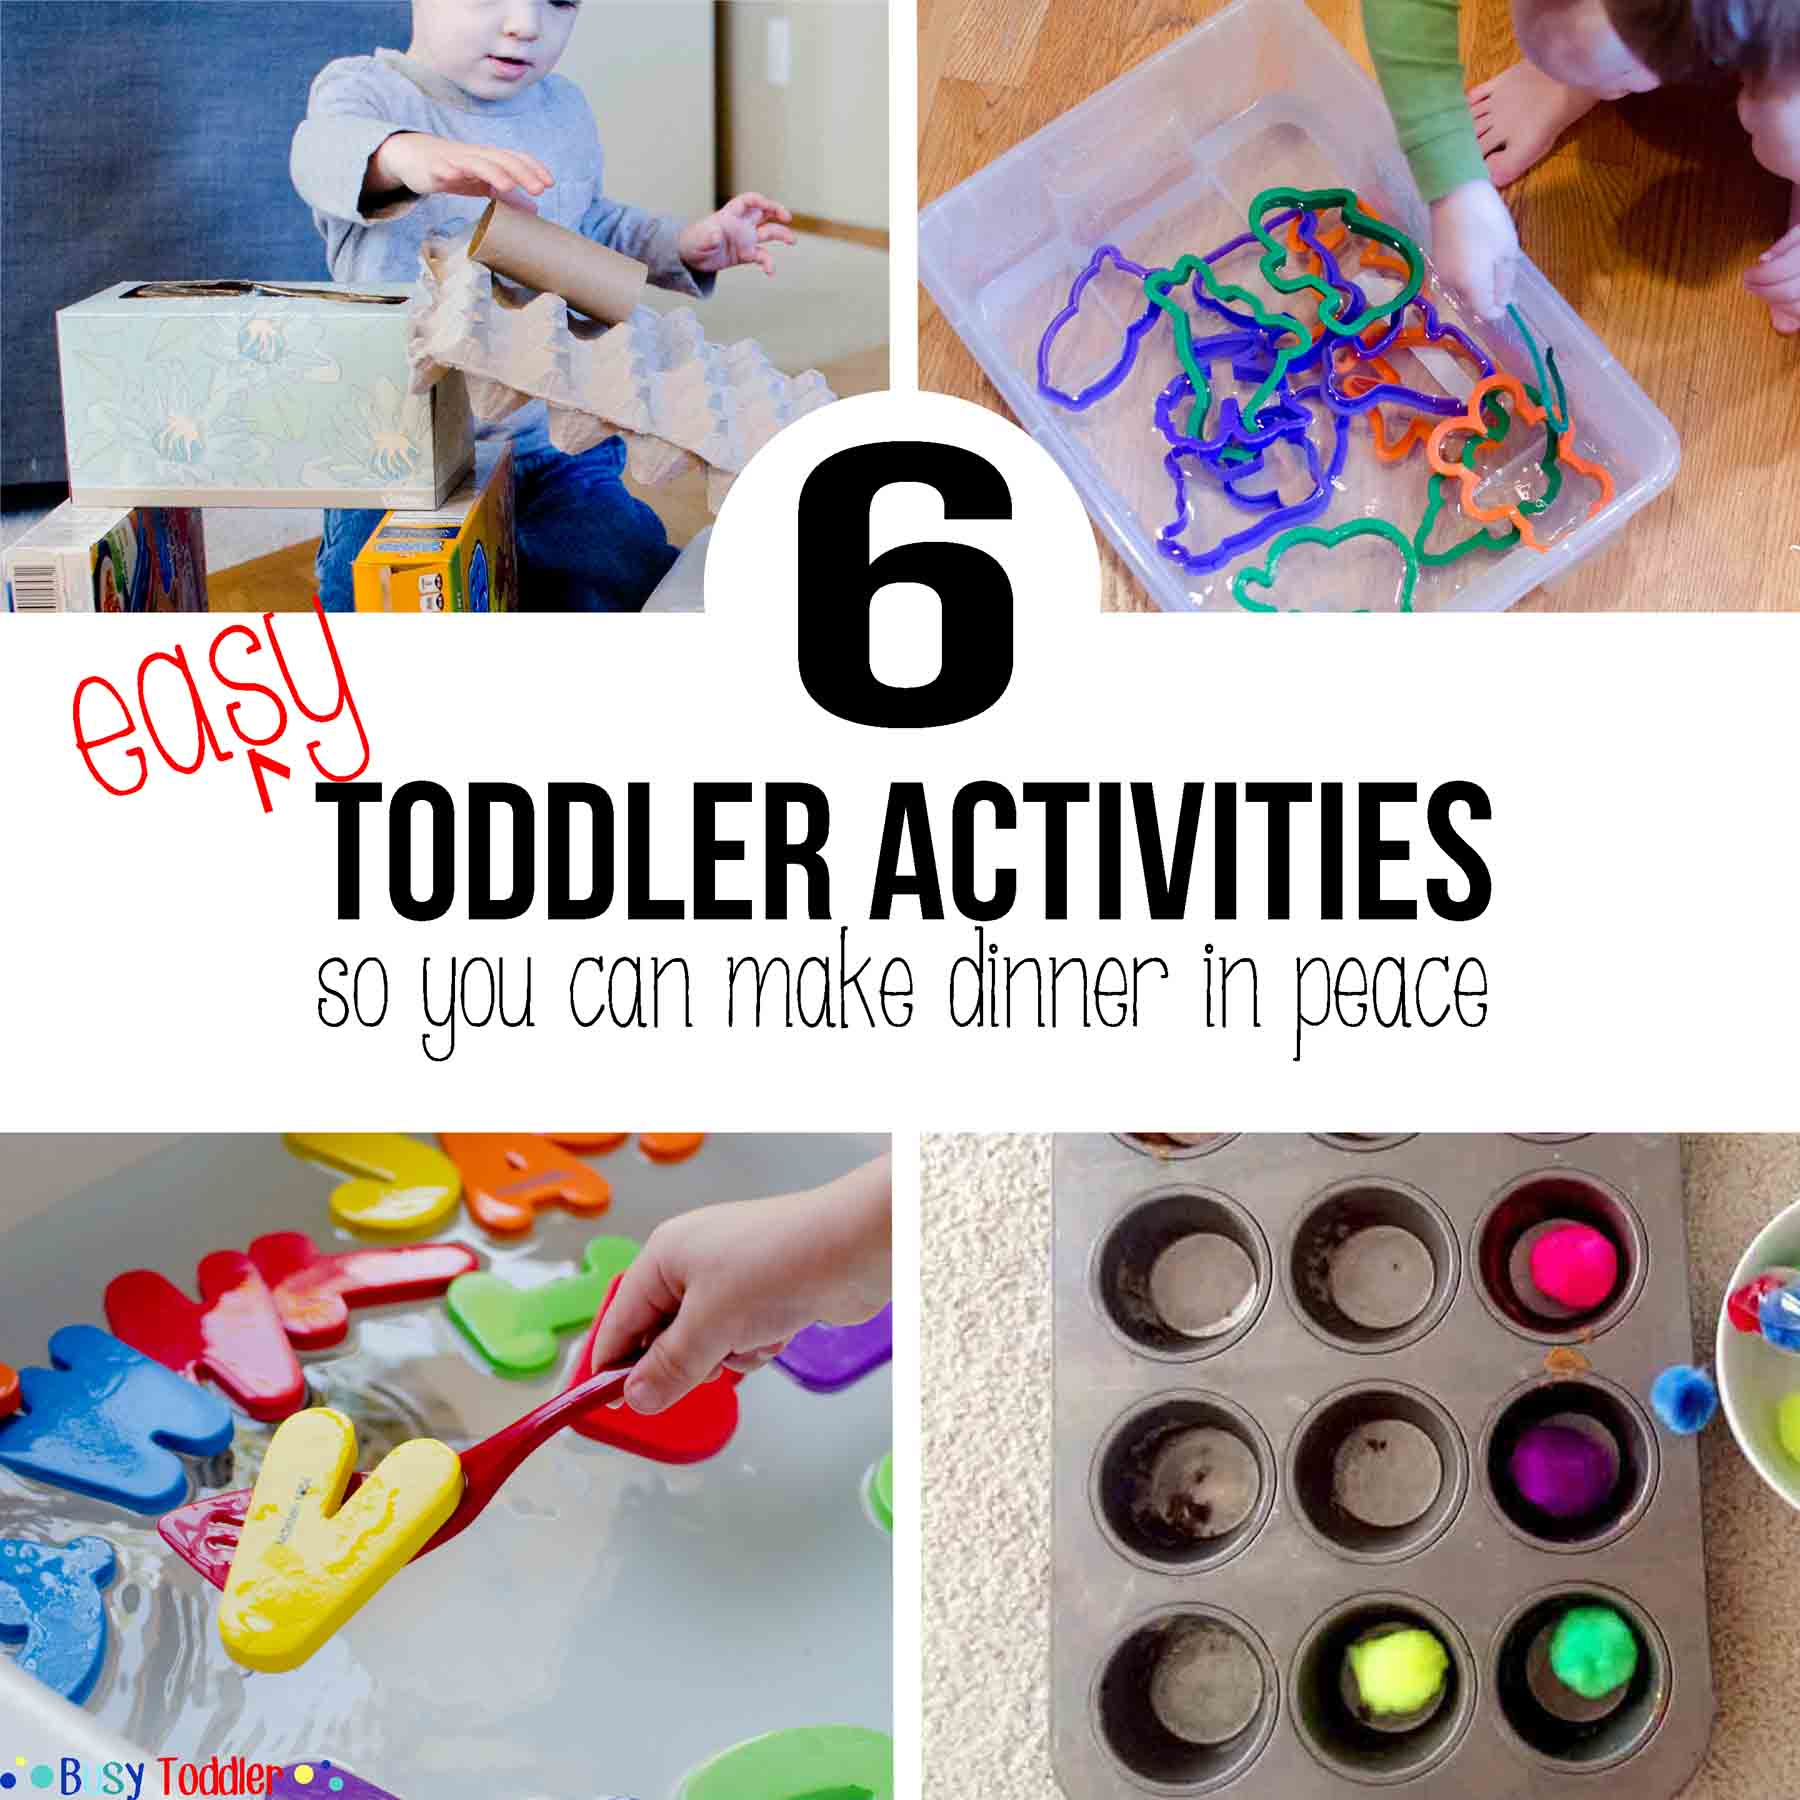 EASY ACTIVITIES: 6 quick toddler activities so you can make dinner in peace